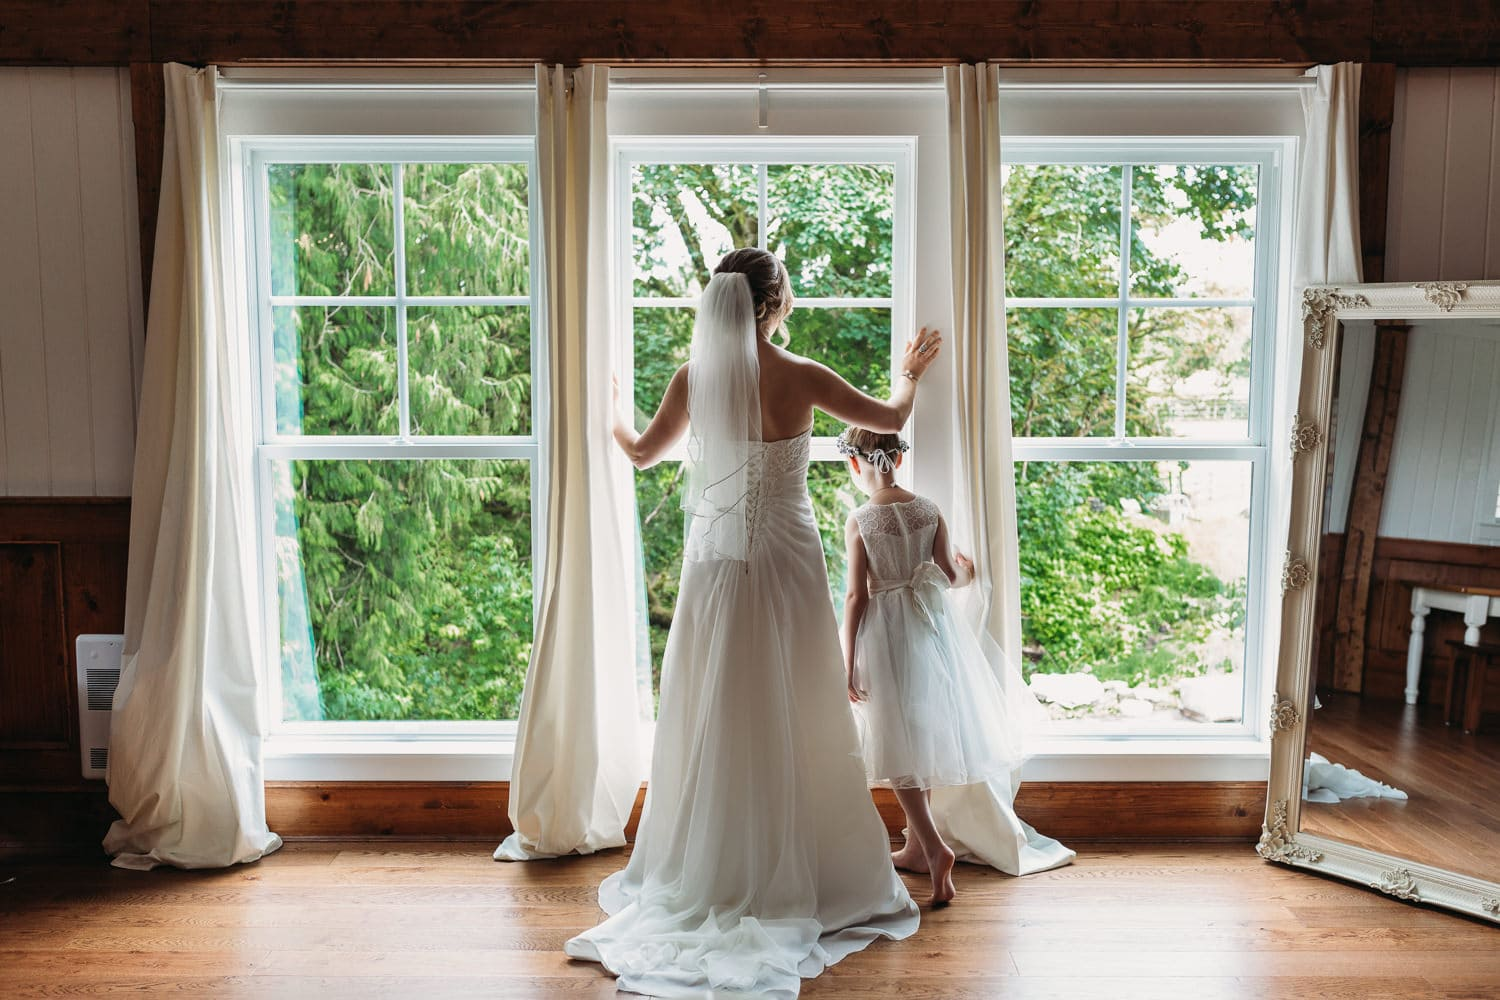 bridal loft at heronsbridge in abbotsford with bride looking out window